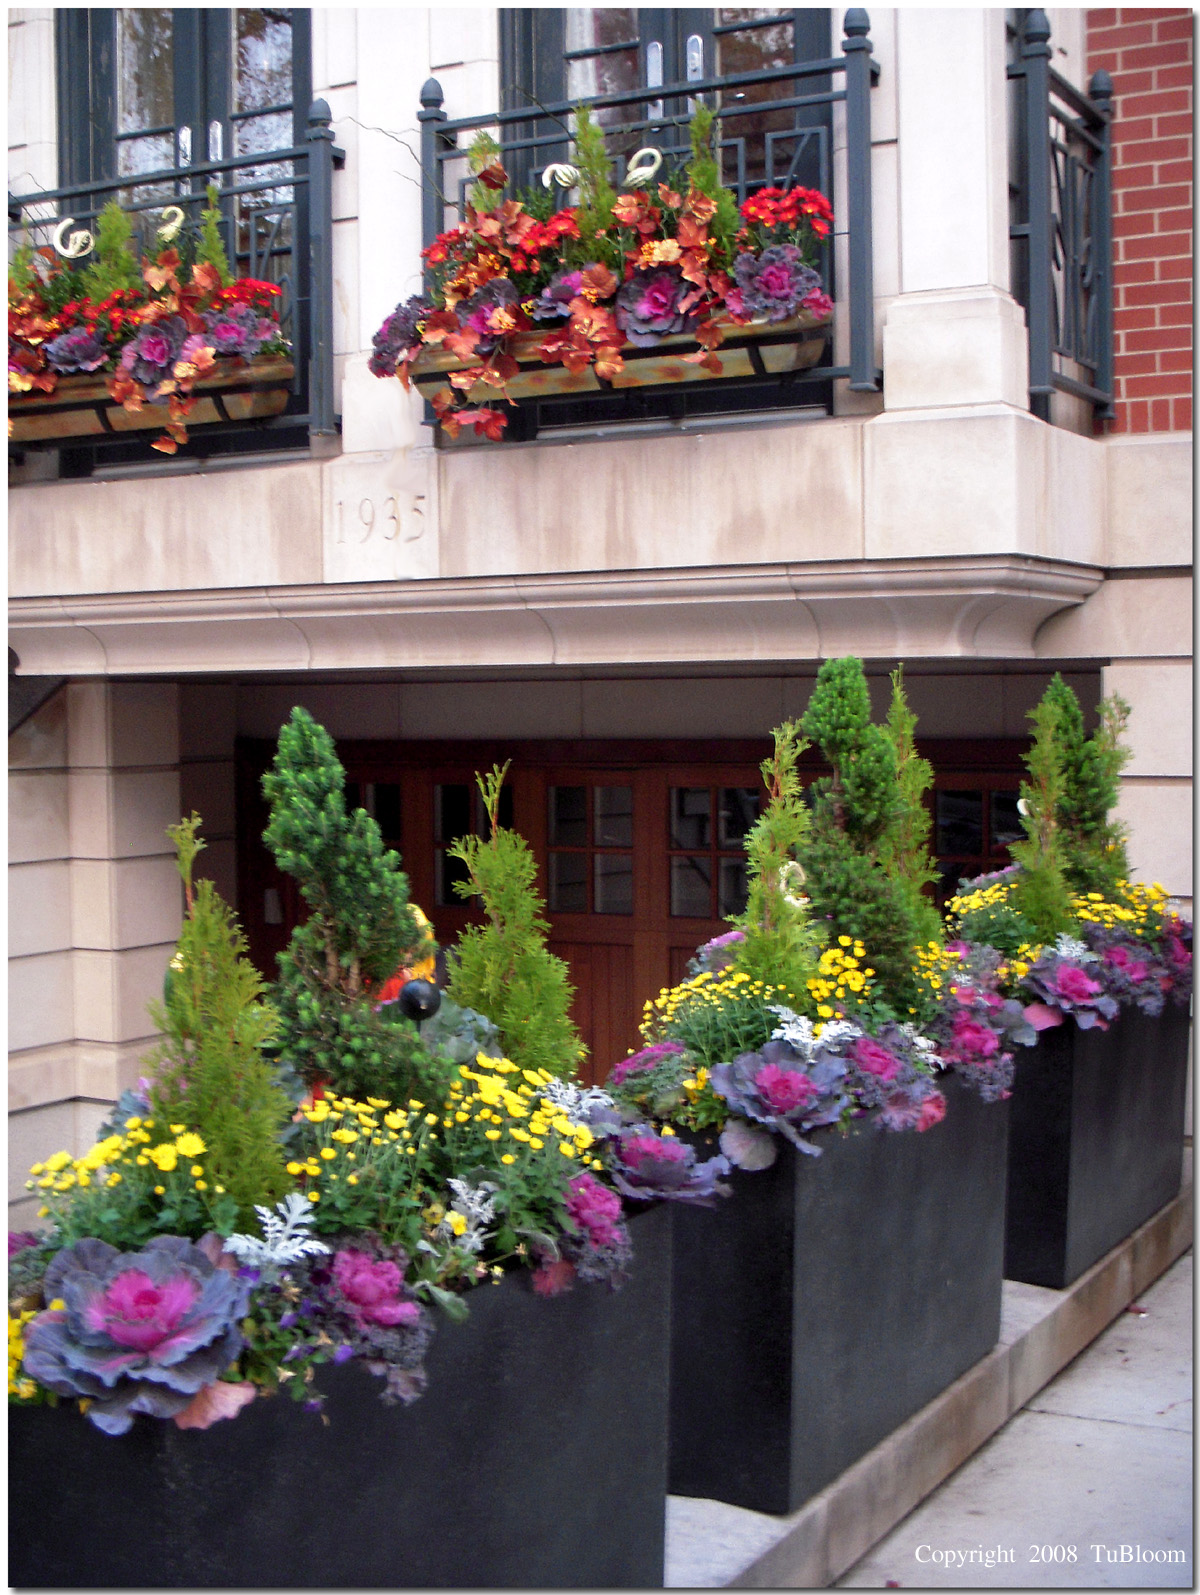 chicago garden landscape design 002 - Container Garden Design Ideas